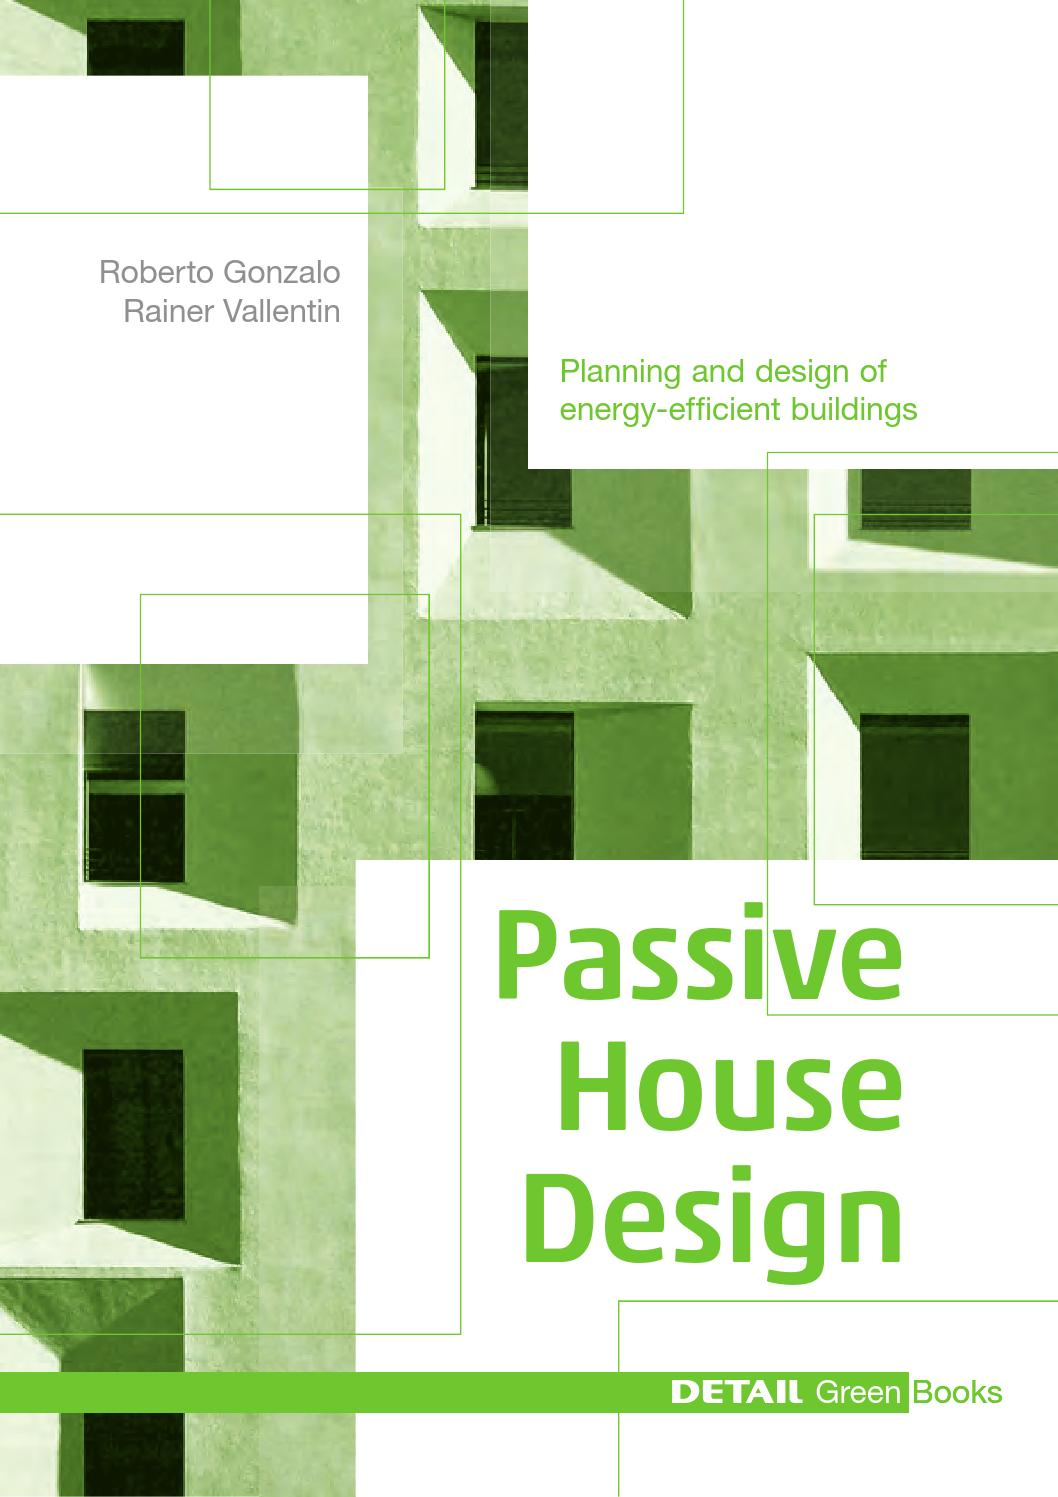 Detail Green Books Passive House Design By Issuu Solar Panel Guidelines